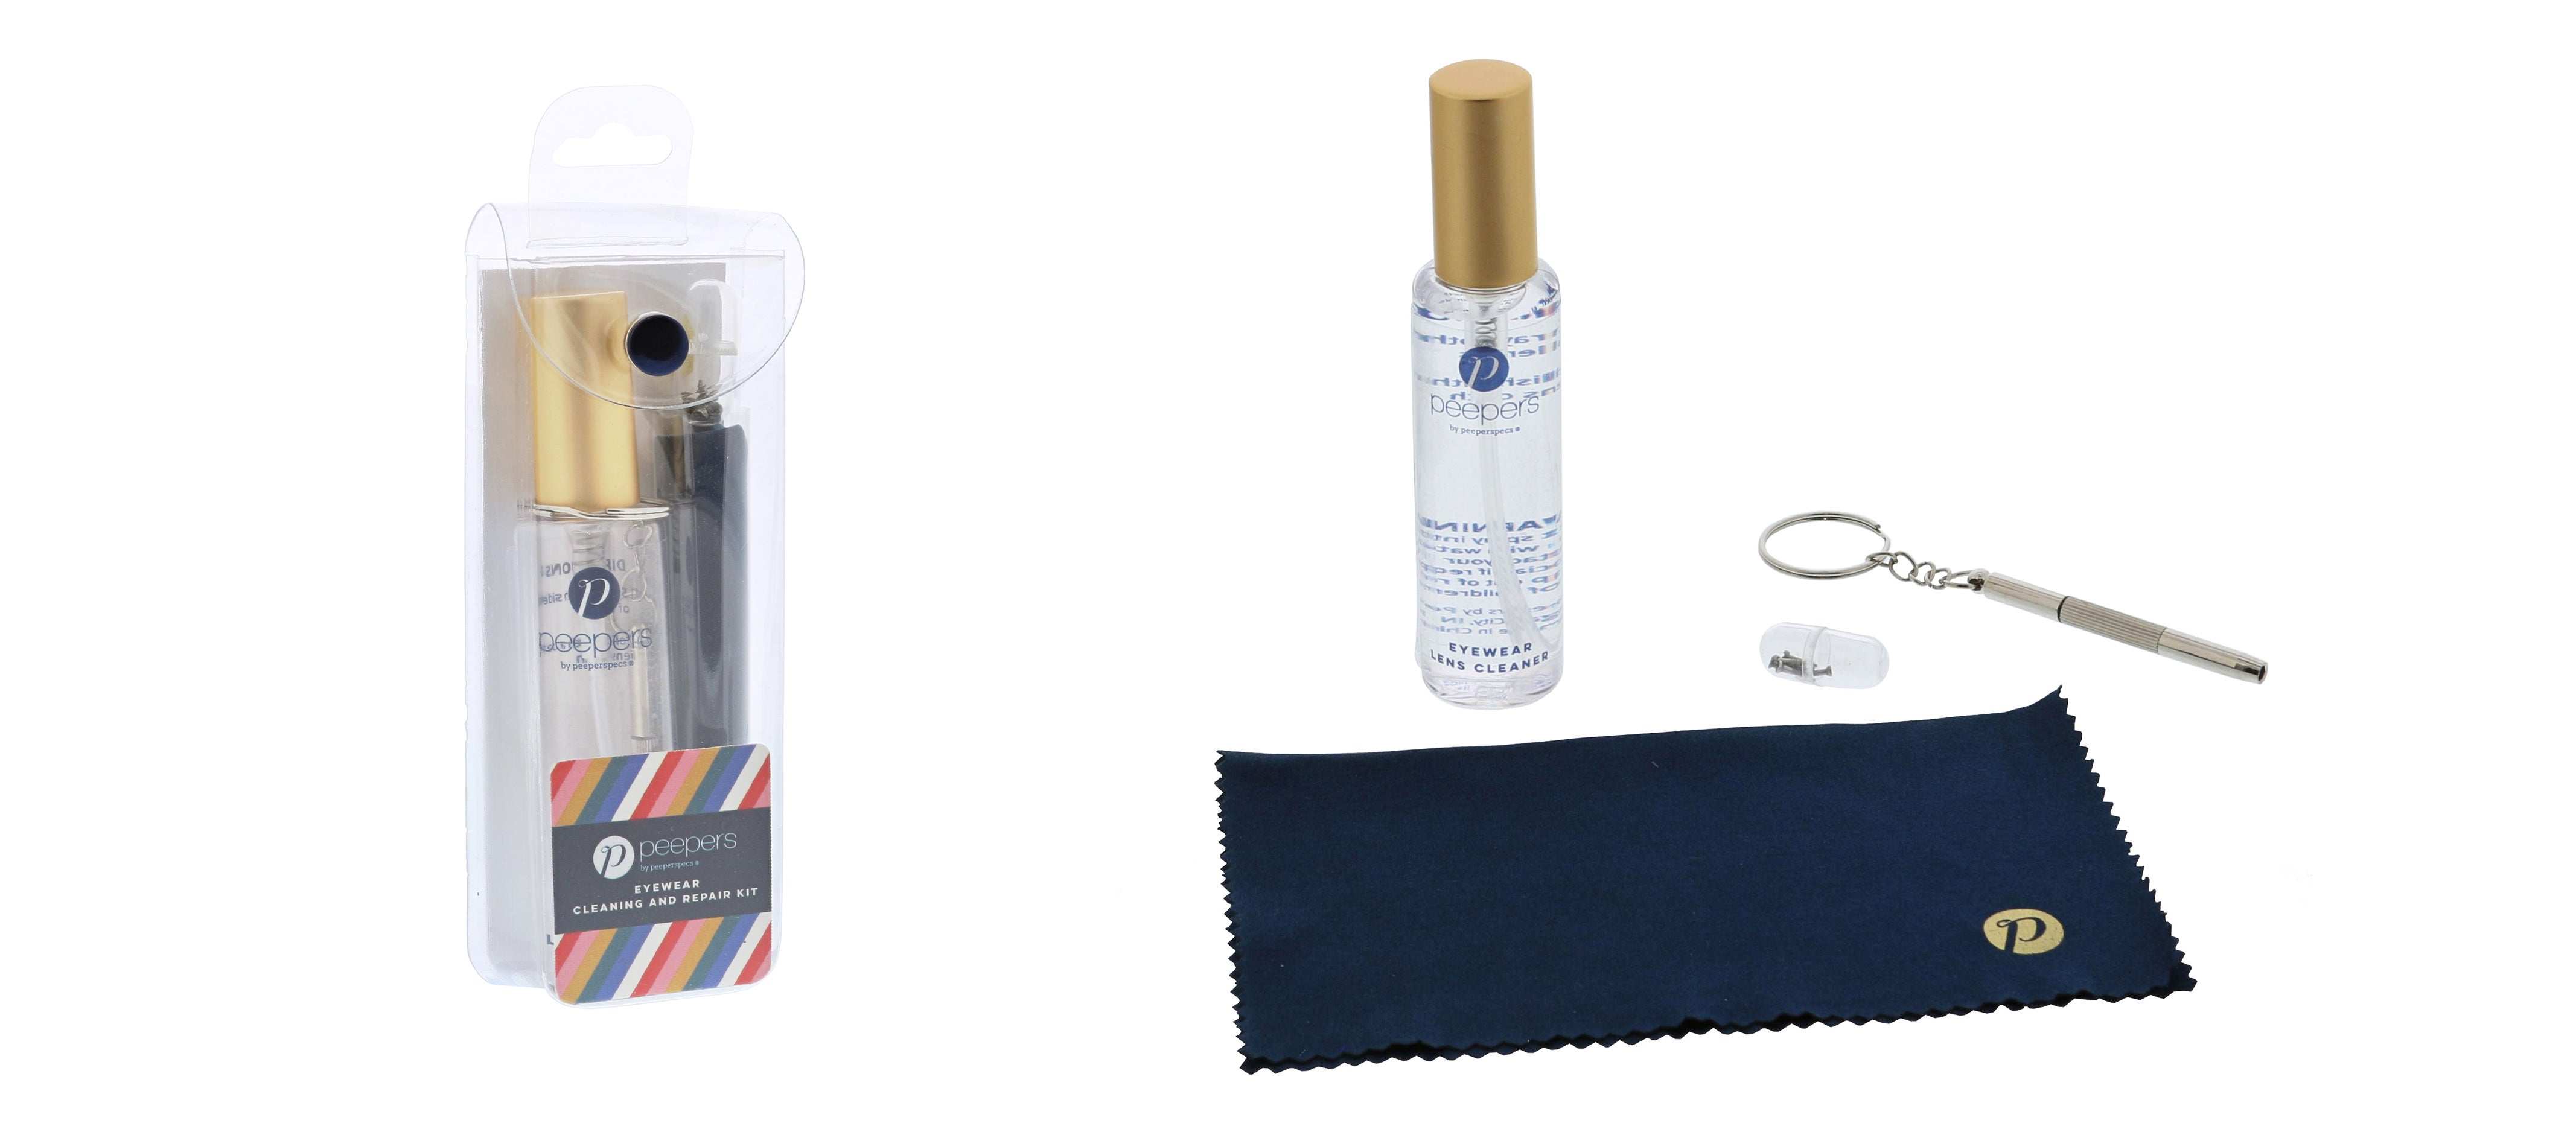 Peepers cleaning kit for eyeglasses